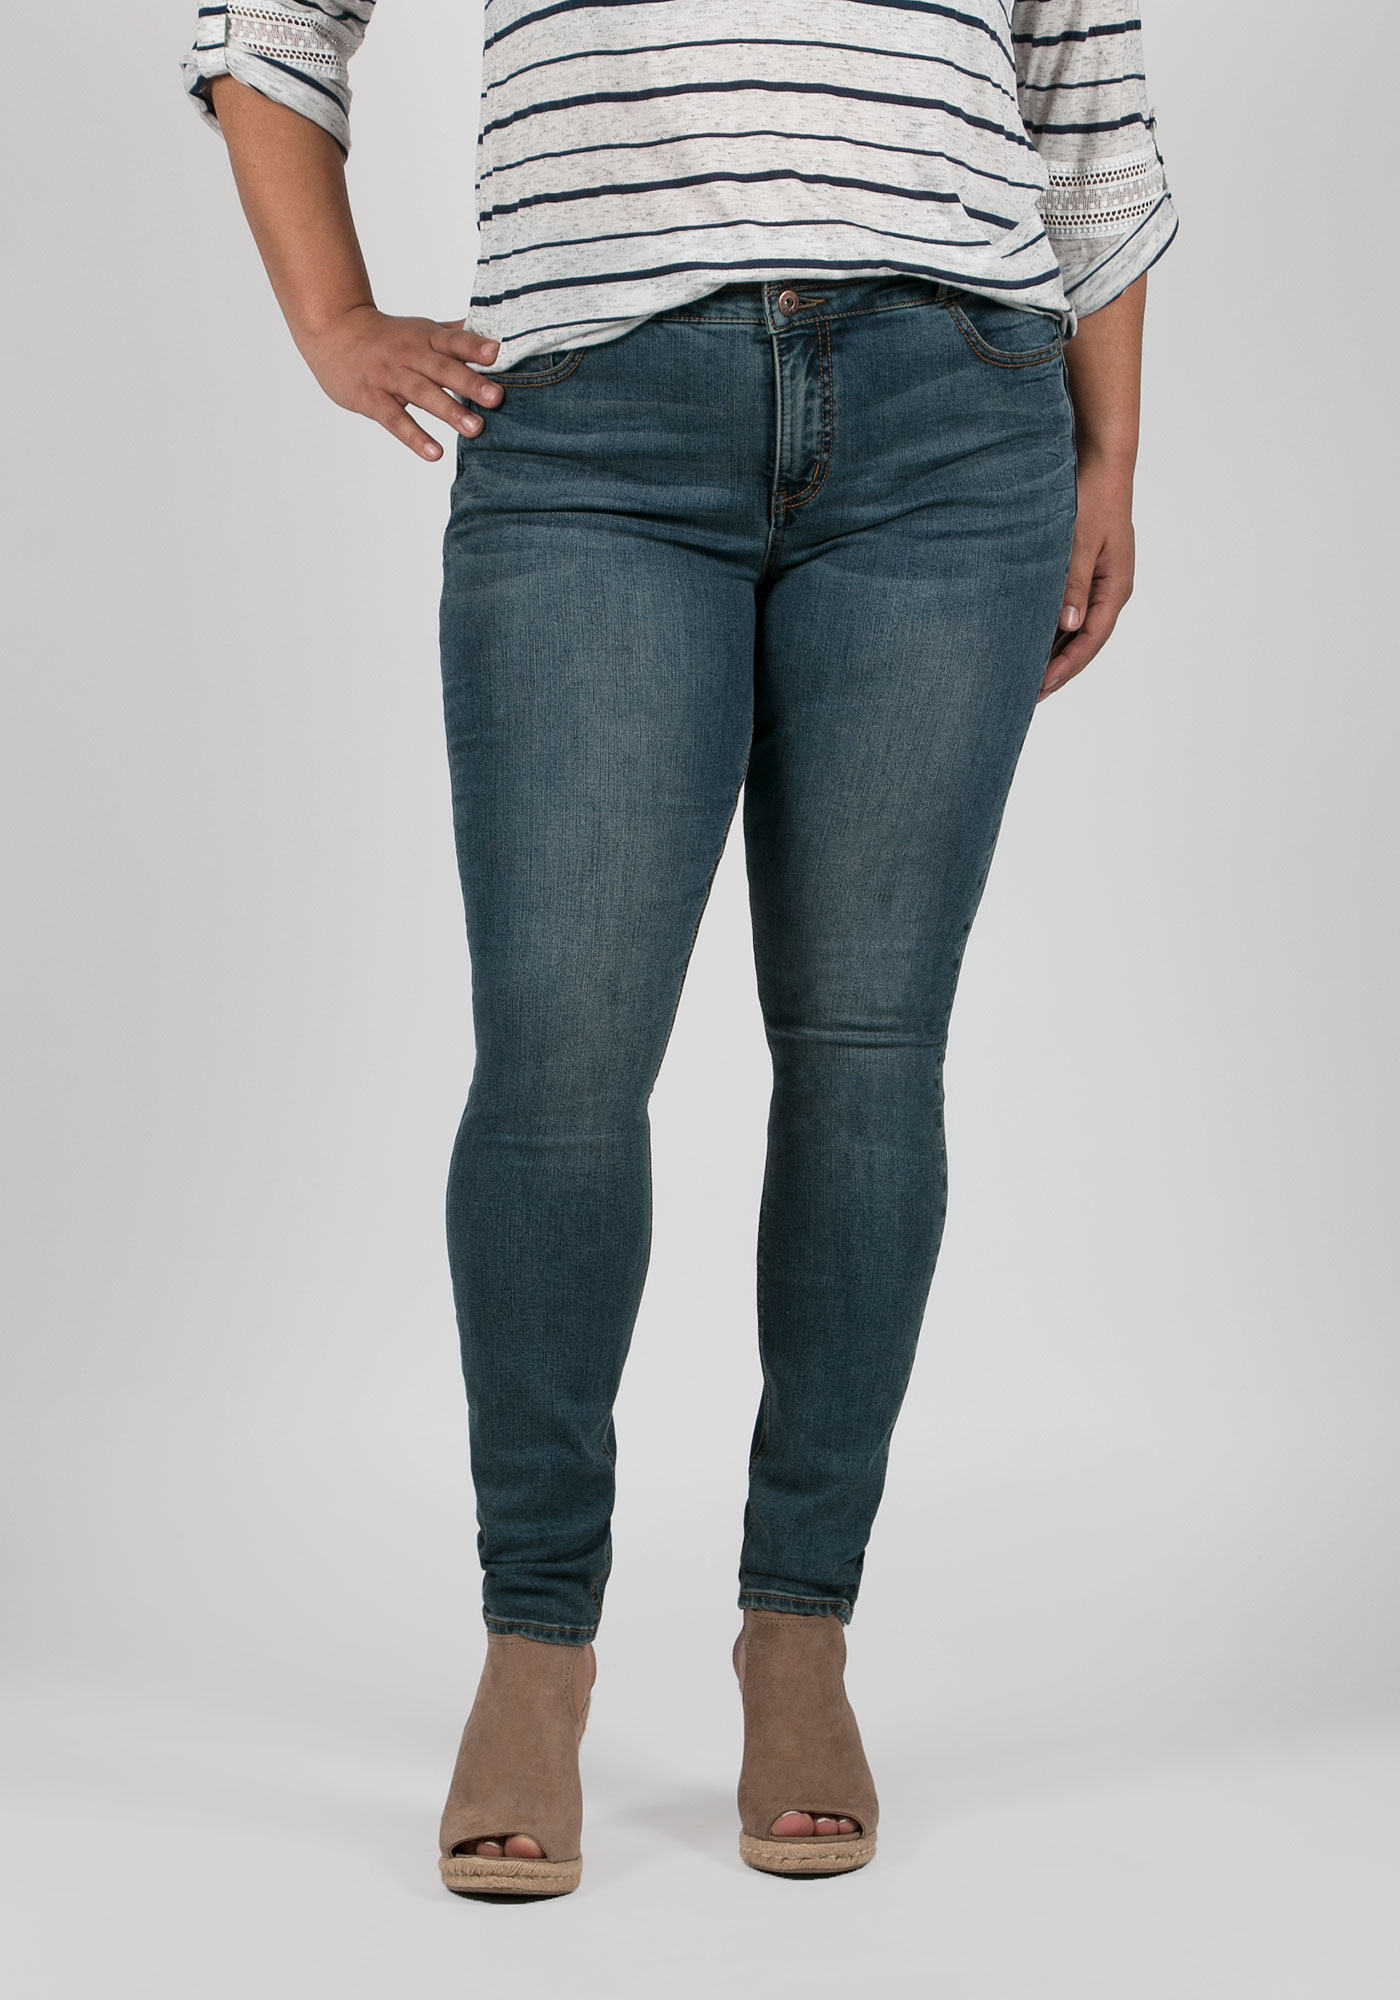 Shop jeggings and skinny jeans butt lifting denim for plus size women at dirtyinstalzonevx6.ga! Our skinny jean and selection includes so many styles, how will you choose?